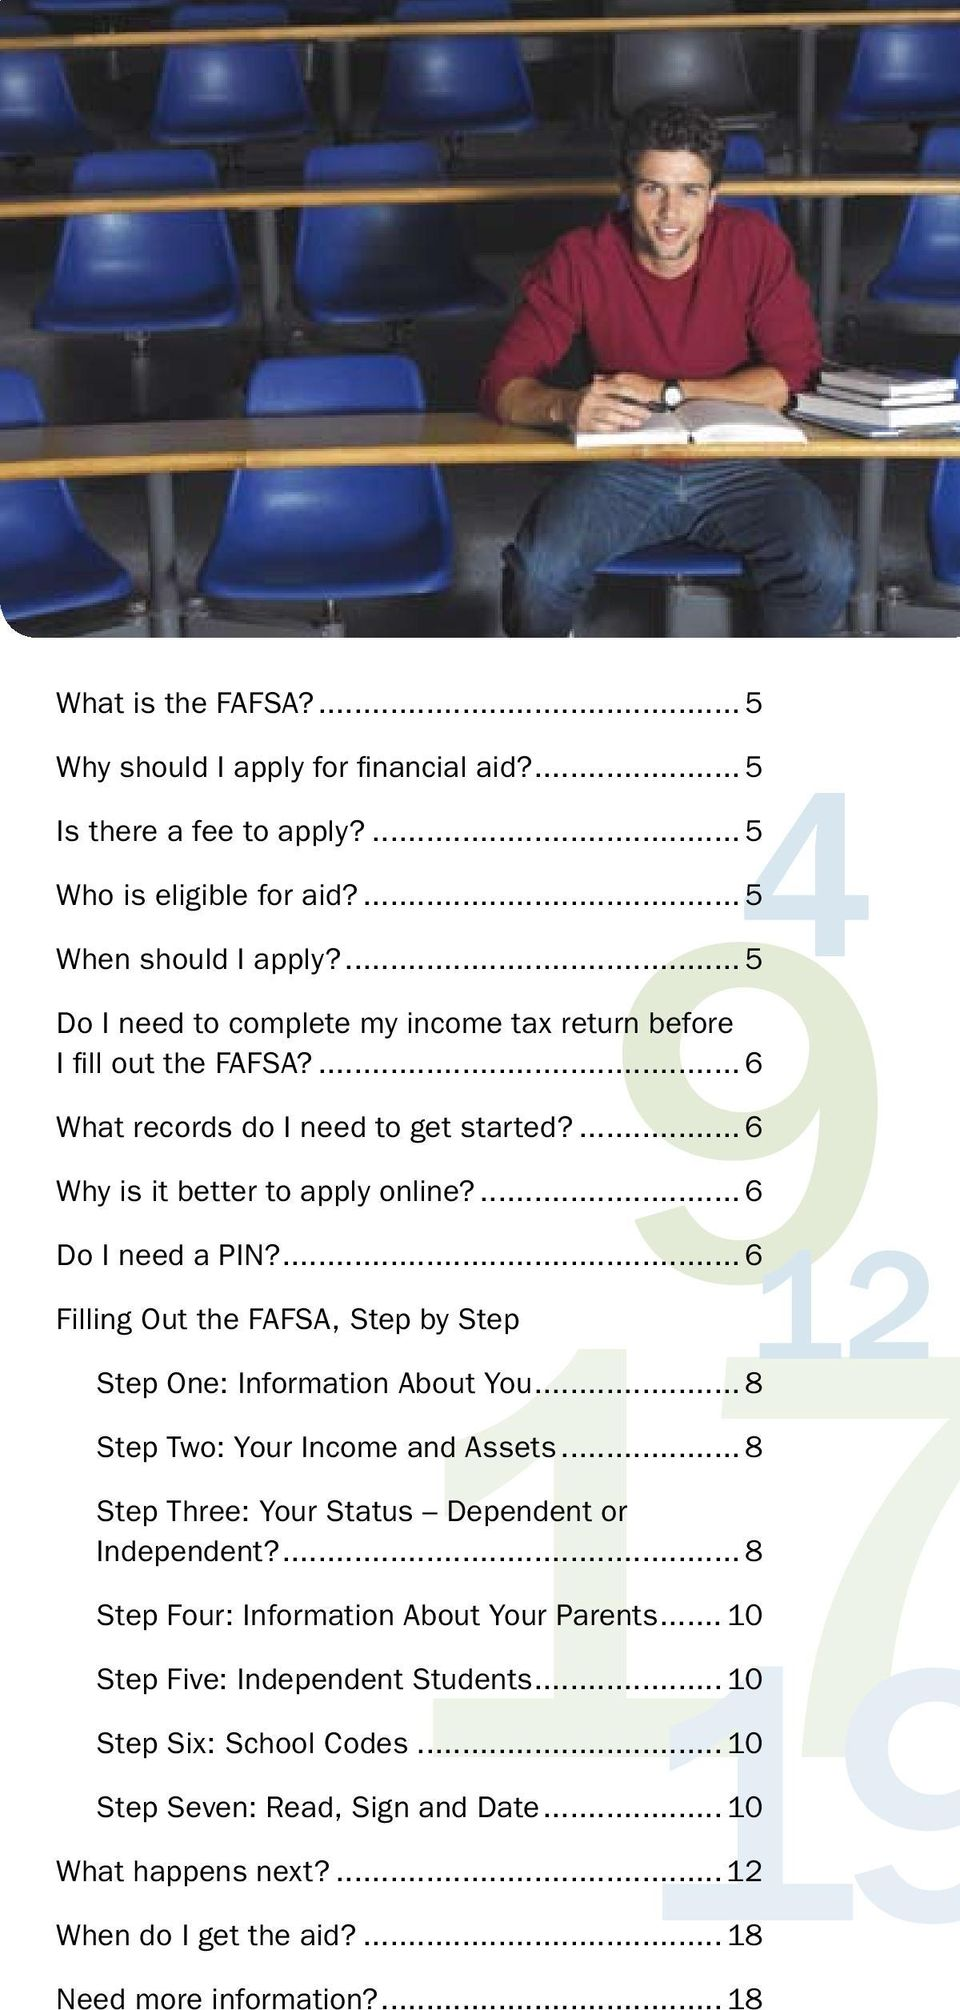 ... 6 Filling Out the FAFSA, Step by Step Step One: Information About You... 8 Step Two: Your Income and Assets... 8 Step Three: Your Status Dependent or Independent?